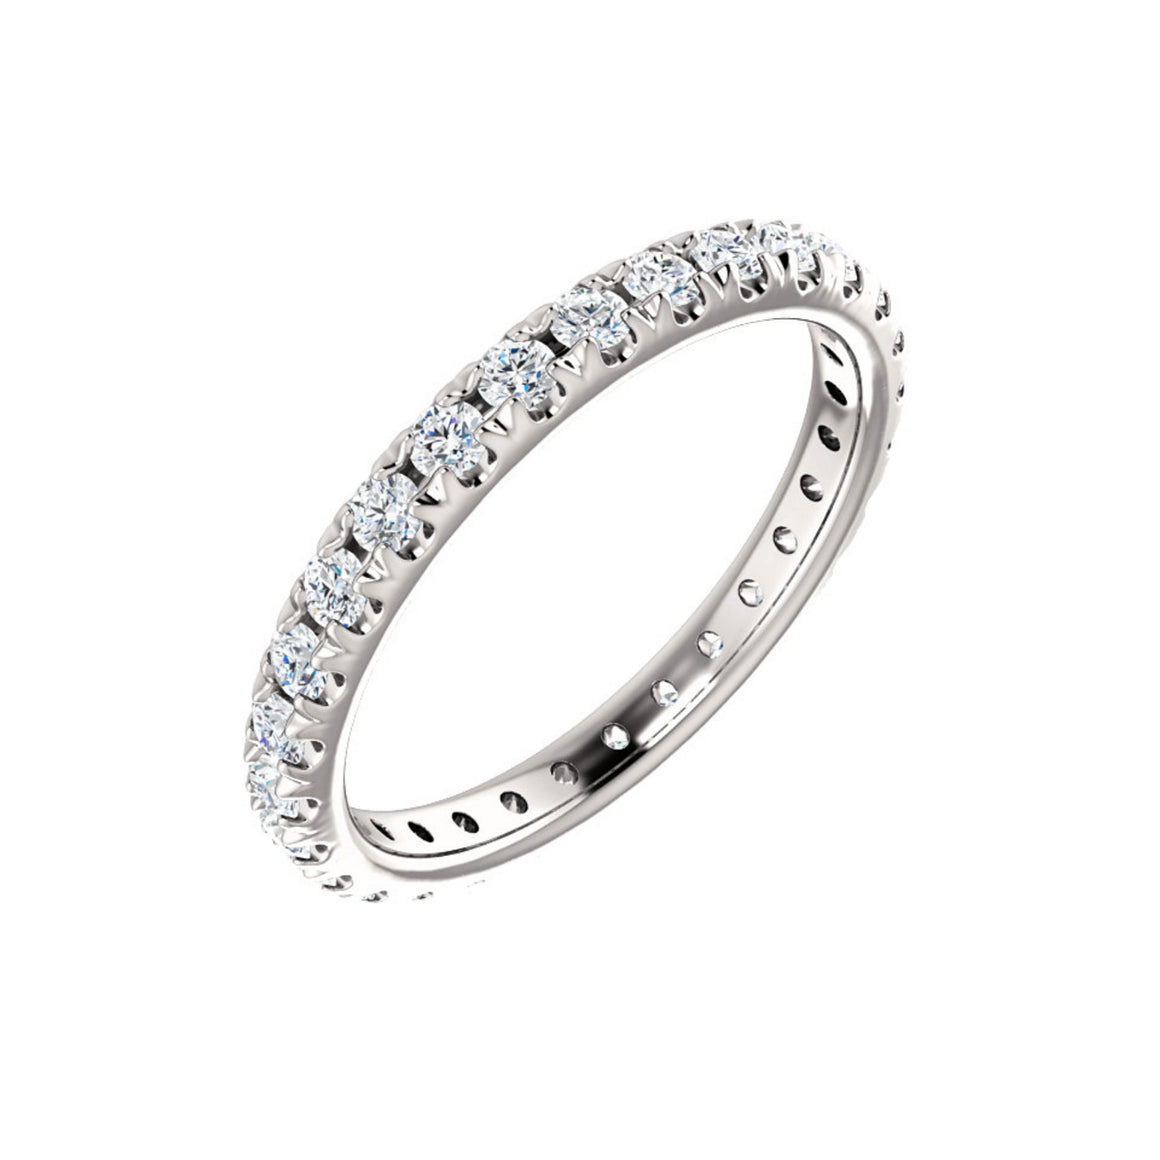 14k Gold 7/8 Carat French Set Diamond Eternity Band